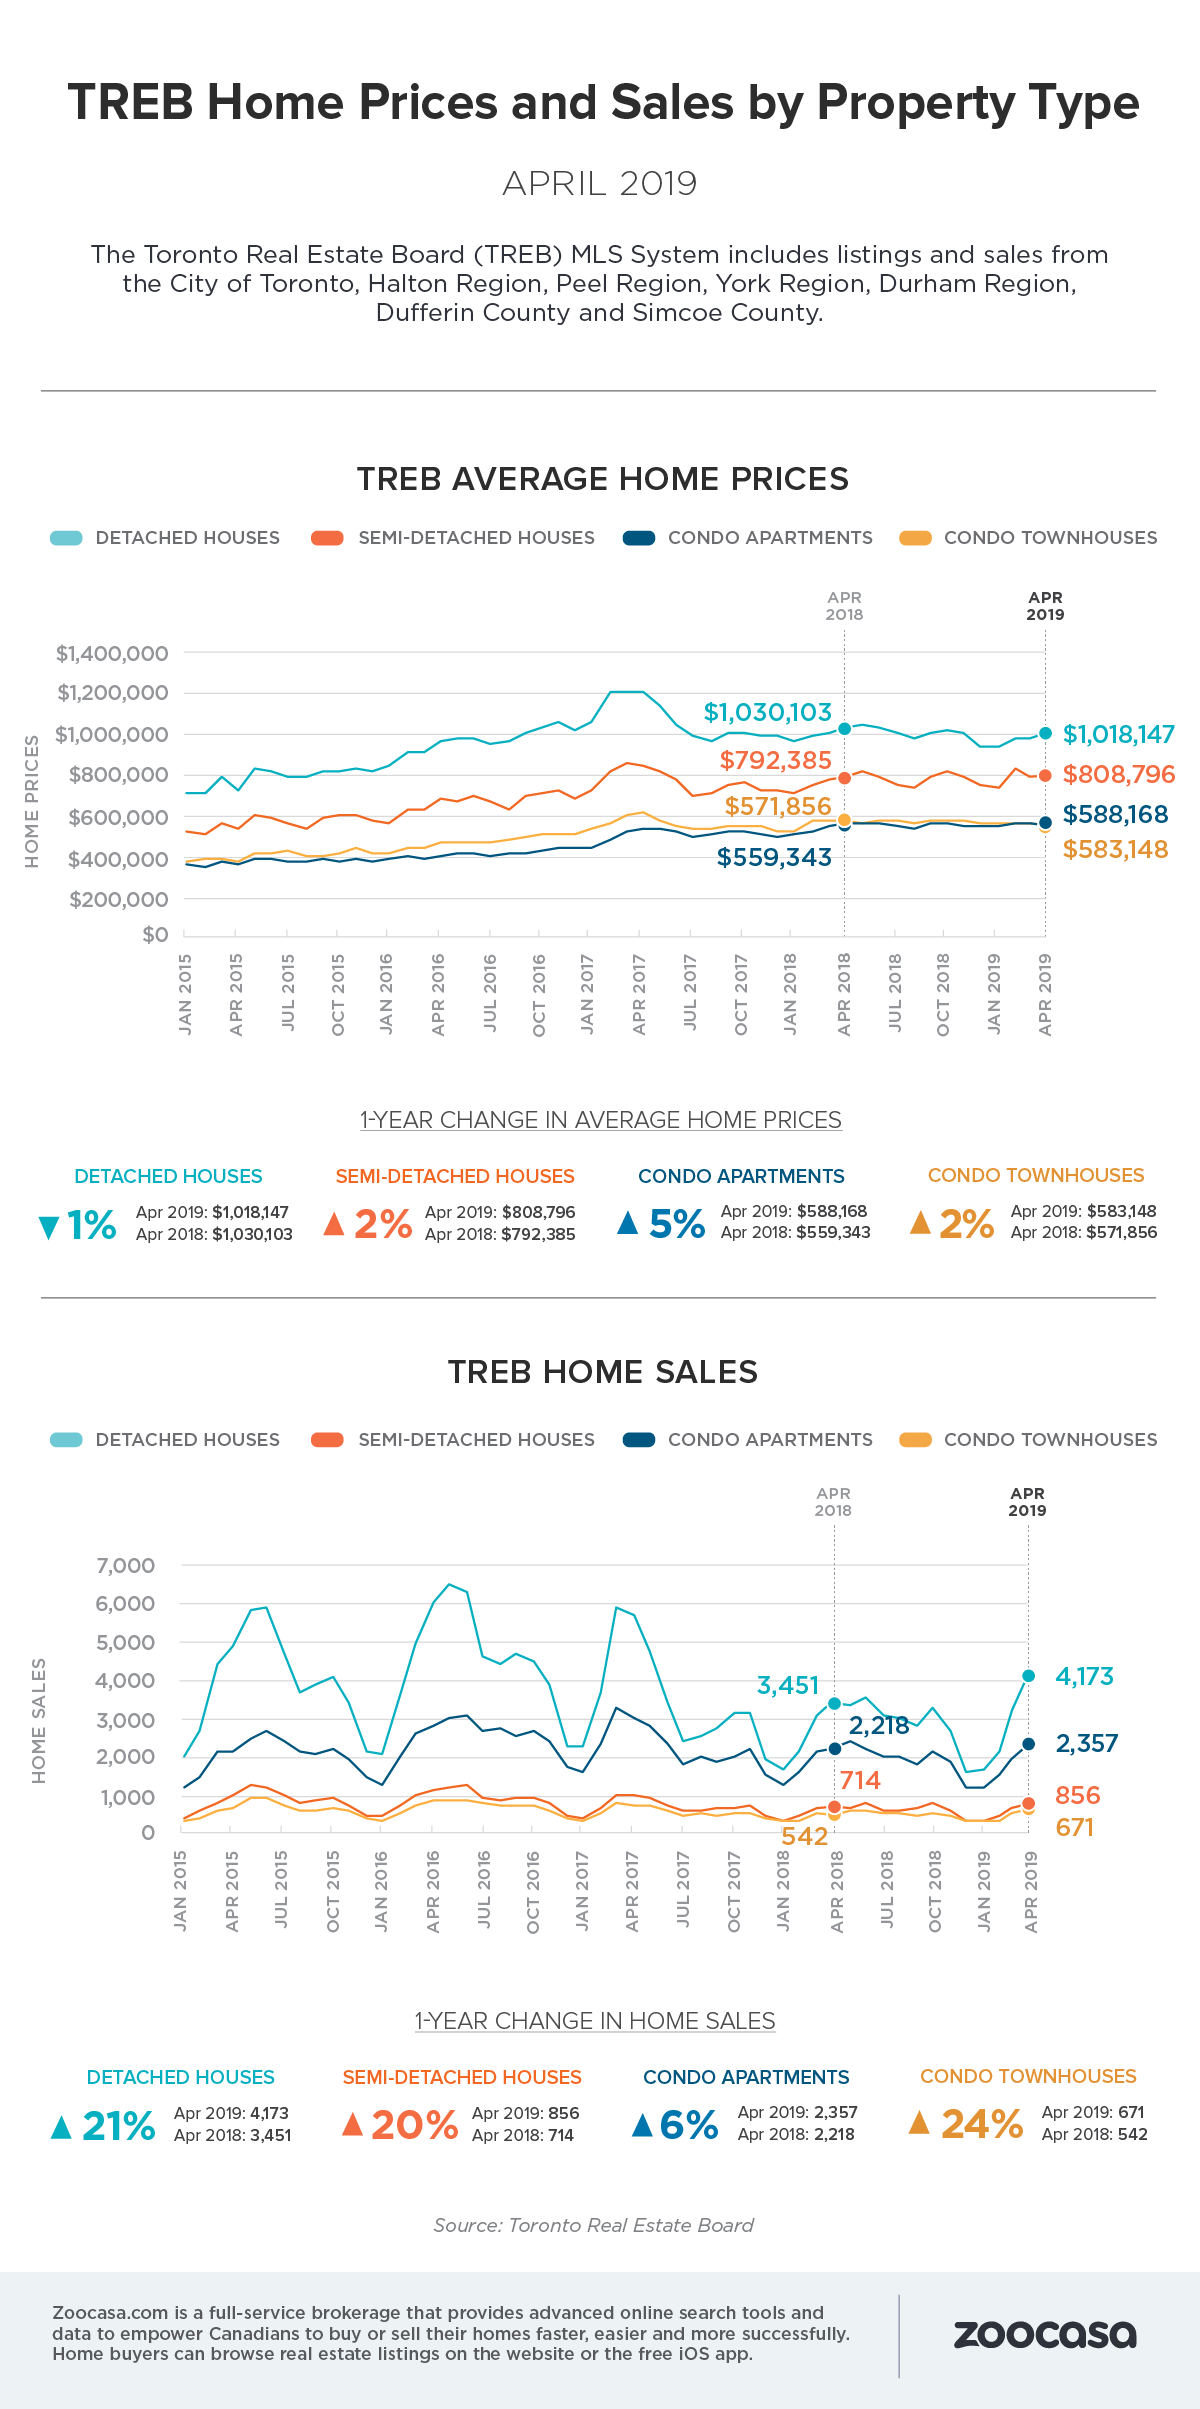 treb-home-sales-prices-april-2019-updated